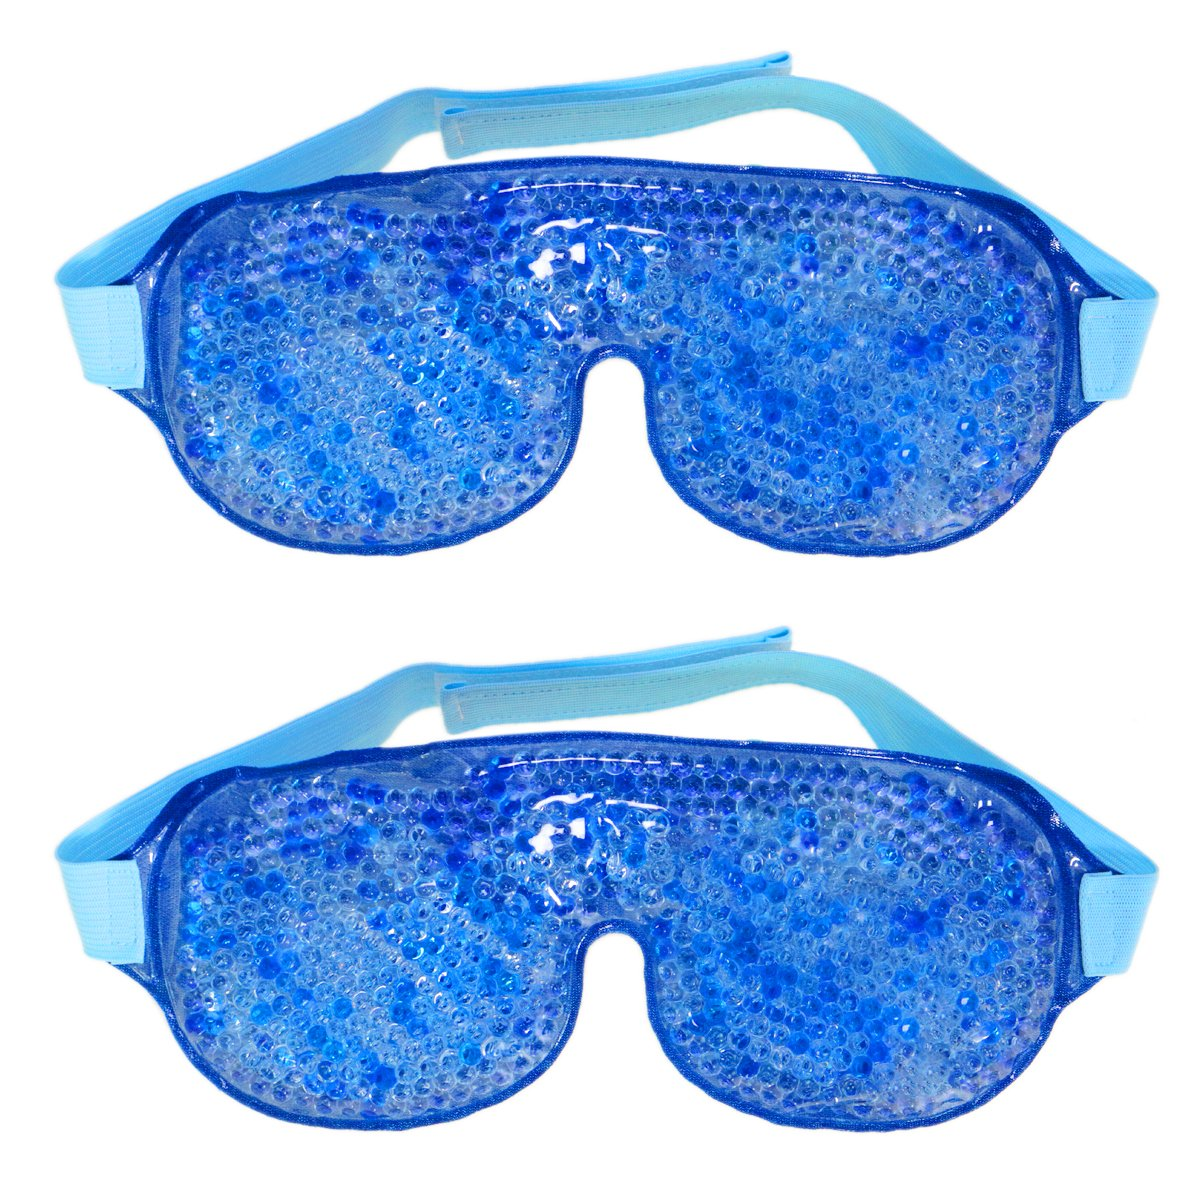 2 Packs Gel Bead Eye Mask Hot and Cold Two Side Reusable Therapy Eye Relieve 10x4 Inch By FORMAX CARE (2)